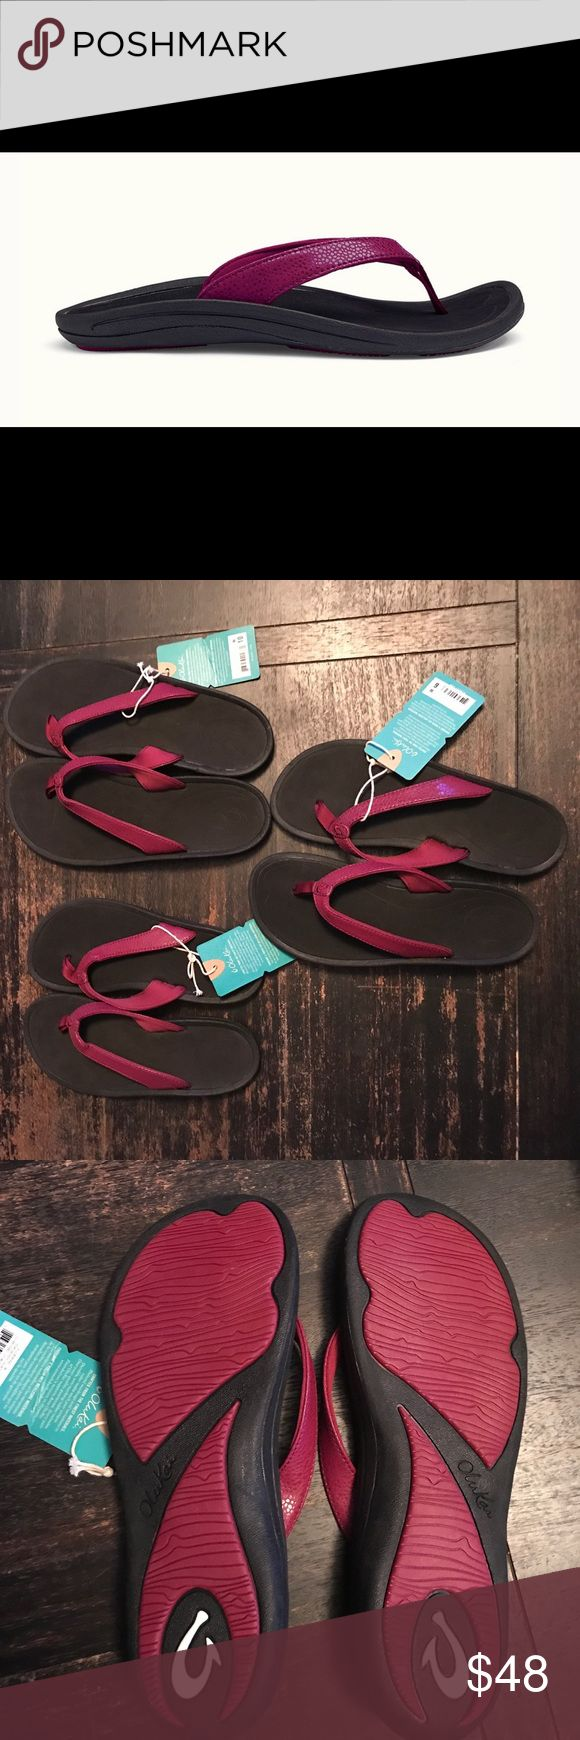 Women's OluKai Kulapa Kai Sandals Brand new, never worn women's OluKai sandals (Pokeberry + Black). With a water-drop strap pattern and vibrant colors, the minimalistic Kulapa Kai proves less can be more. Soft nylon toe post with a delicate laser-etched footbed design. Lightweight, quick-drying, breathable and durable materials built for in and around water. OluKai Shoes Sandals